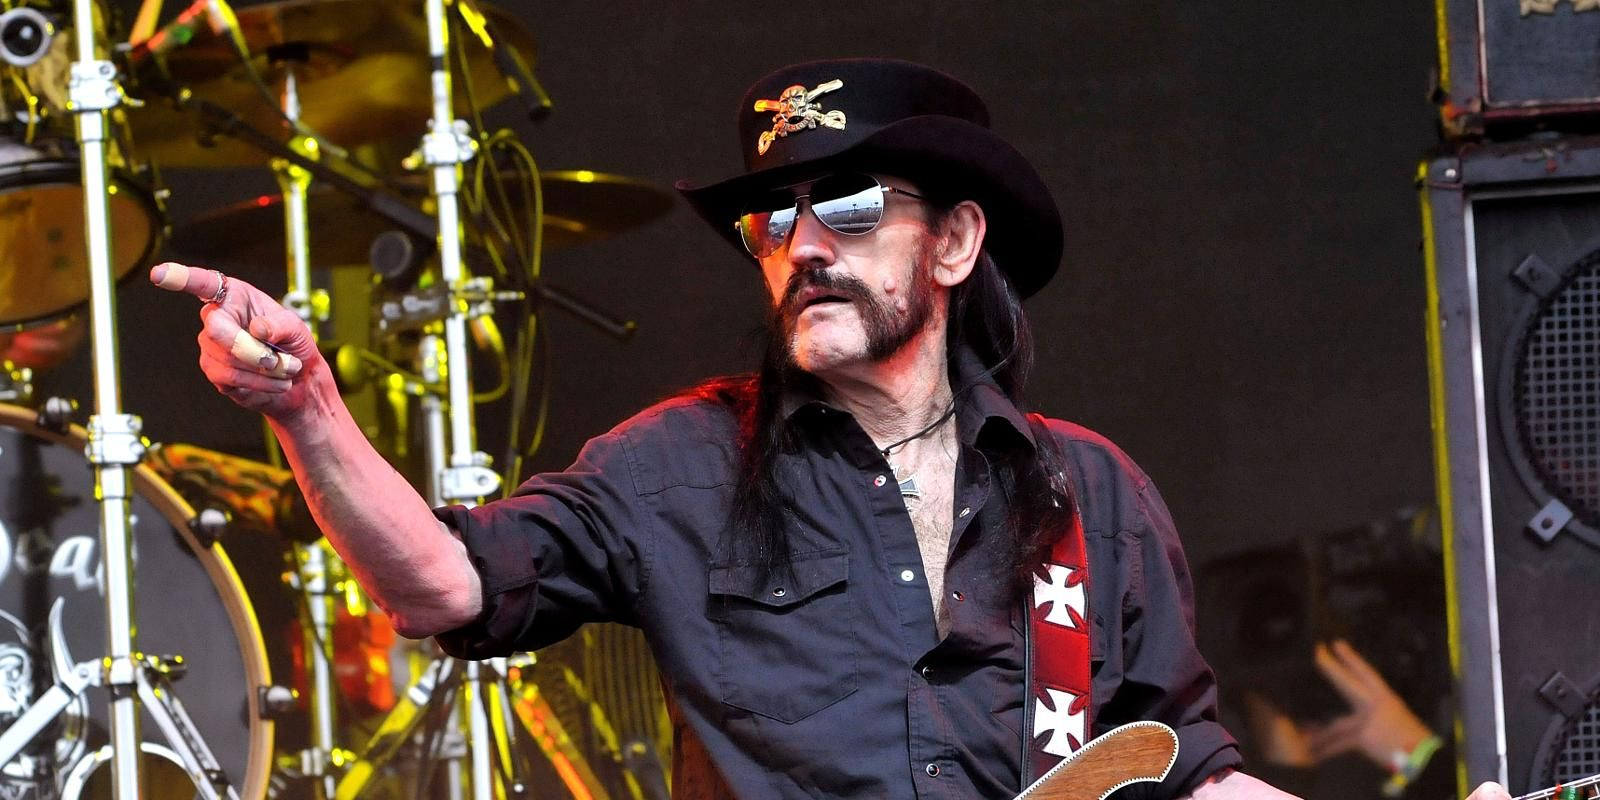 10 Amazing Things You Didn't Know About Lemmy Kilmister